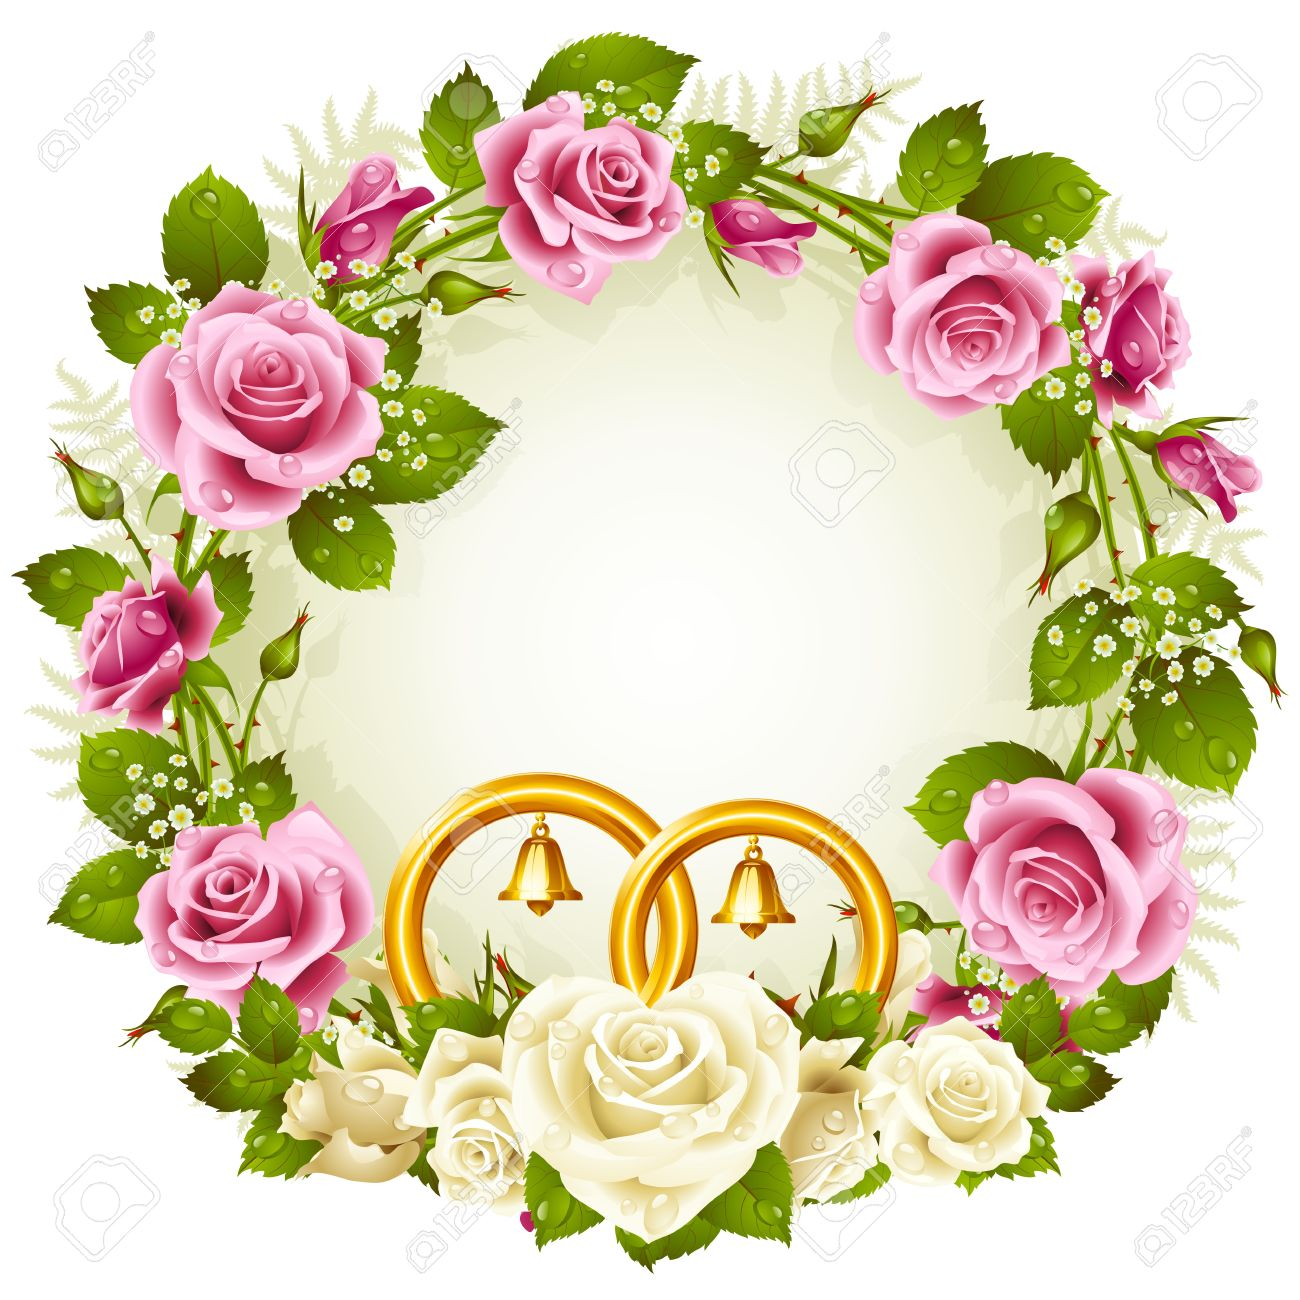 Flower frame  Vector white and pink rose with golden wedding rings isolated on white background Stock Vector - 13643315